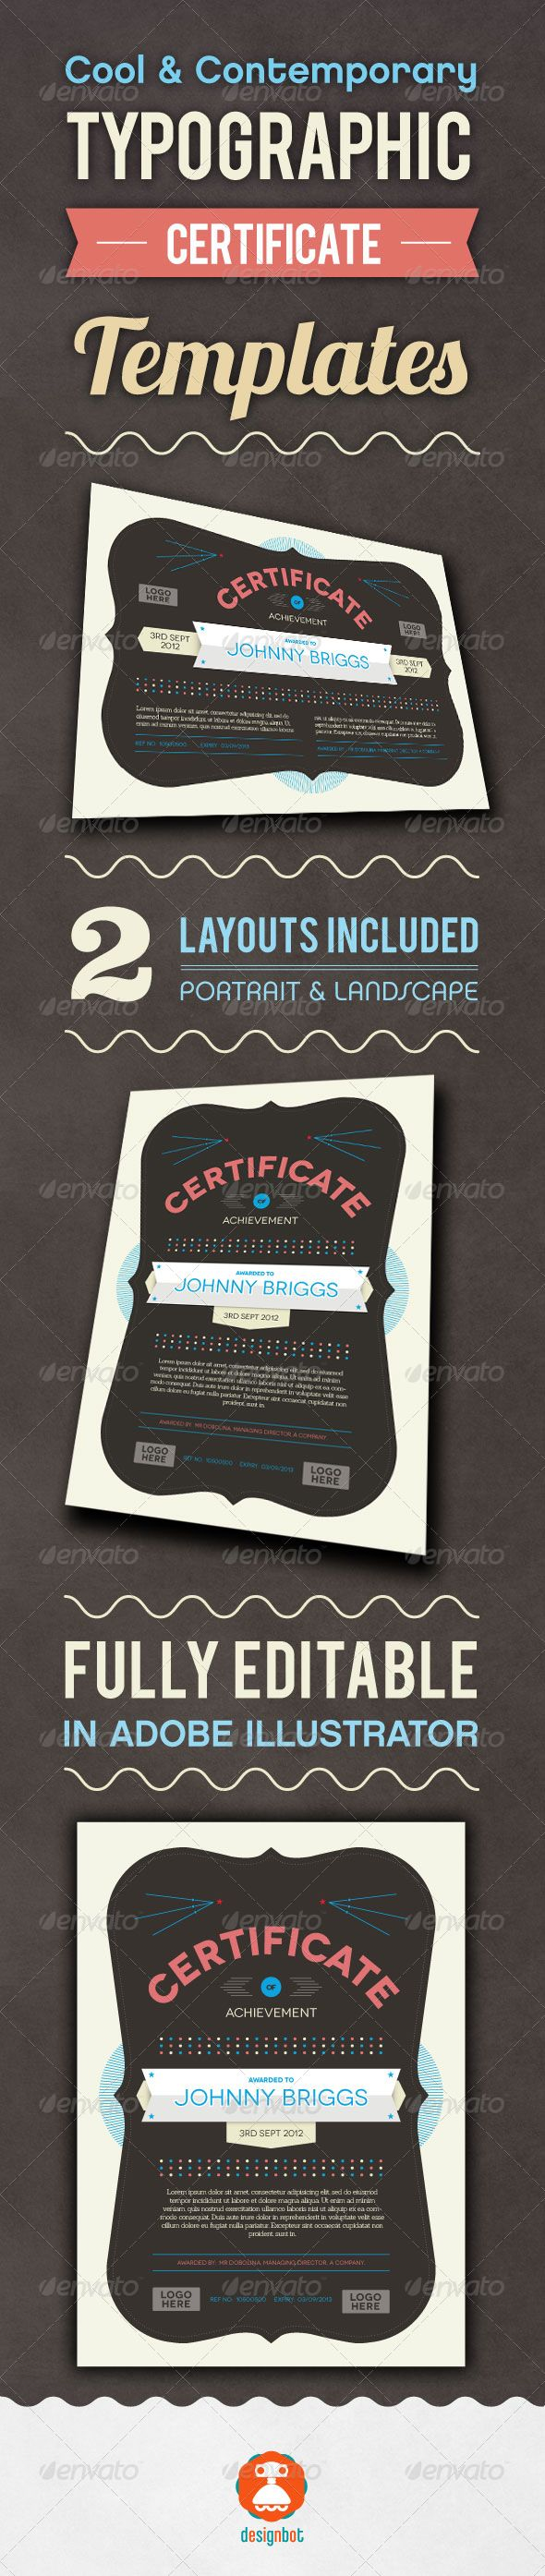 Print Template - GraphicRiver Typographic Certificate 2917624 » Dondrup.com